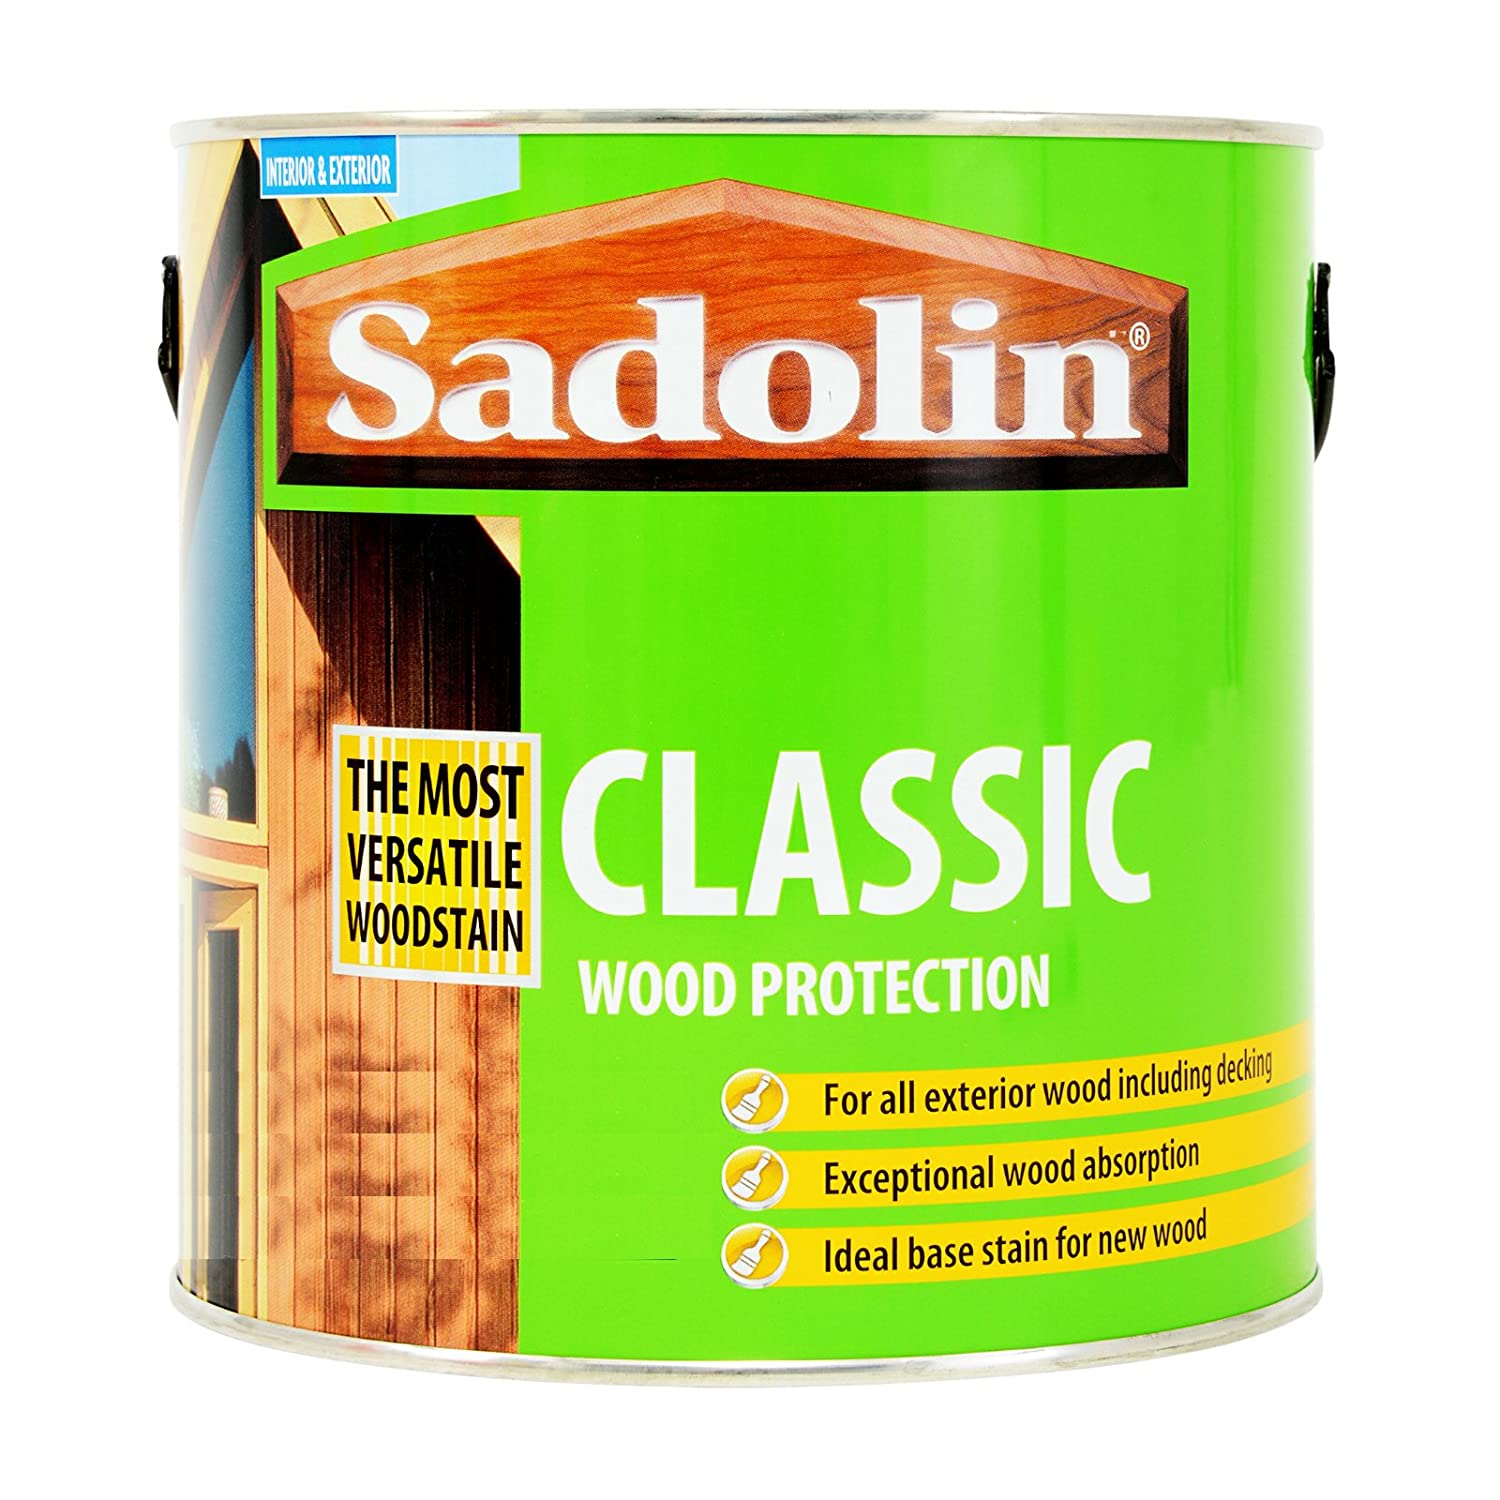 Sadolin classic wood protection light oak 25 litre amazon sadolin classic wood protection light oak 25 litre amazon diy tools baanklon Image collections